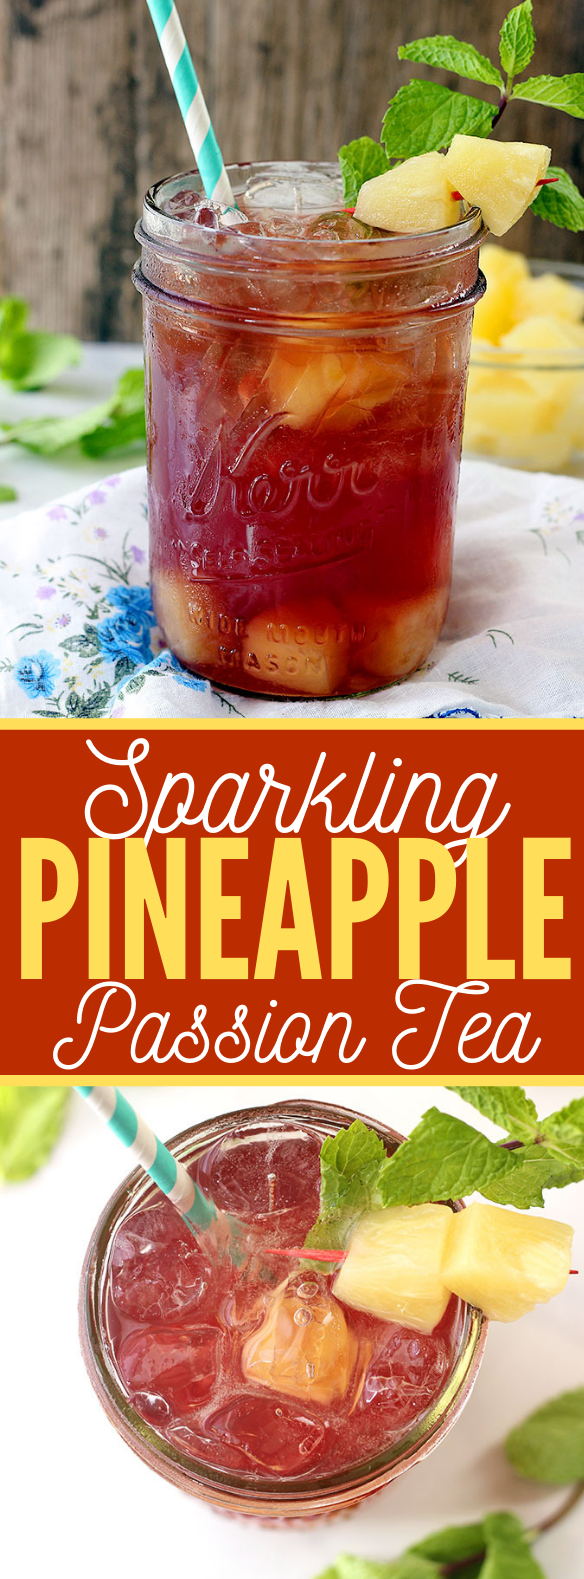 SPARKLING PINEAPPLE PASSION TEA #drink #summer